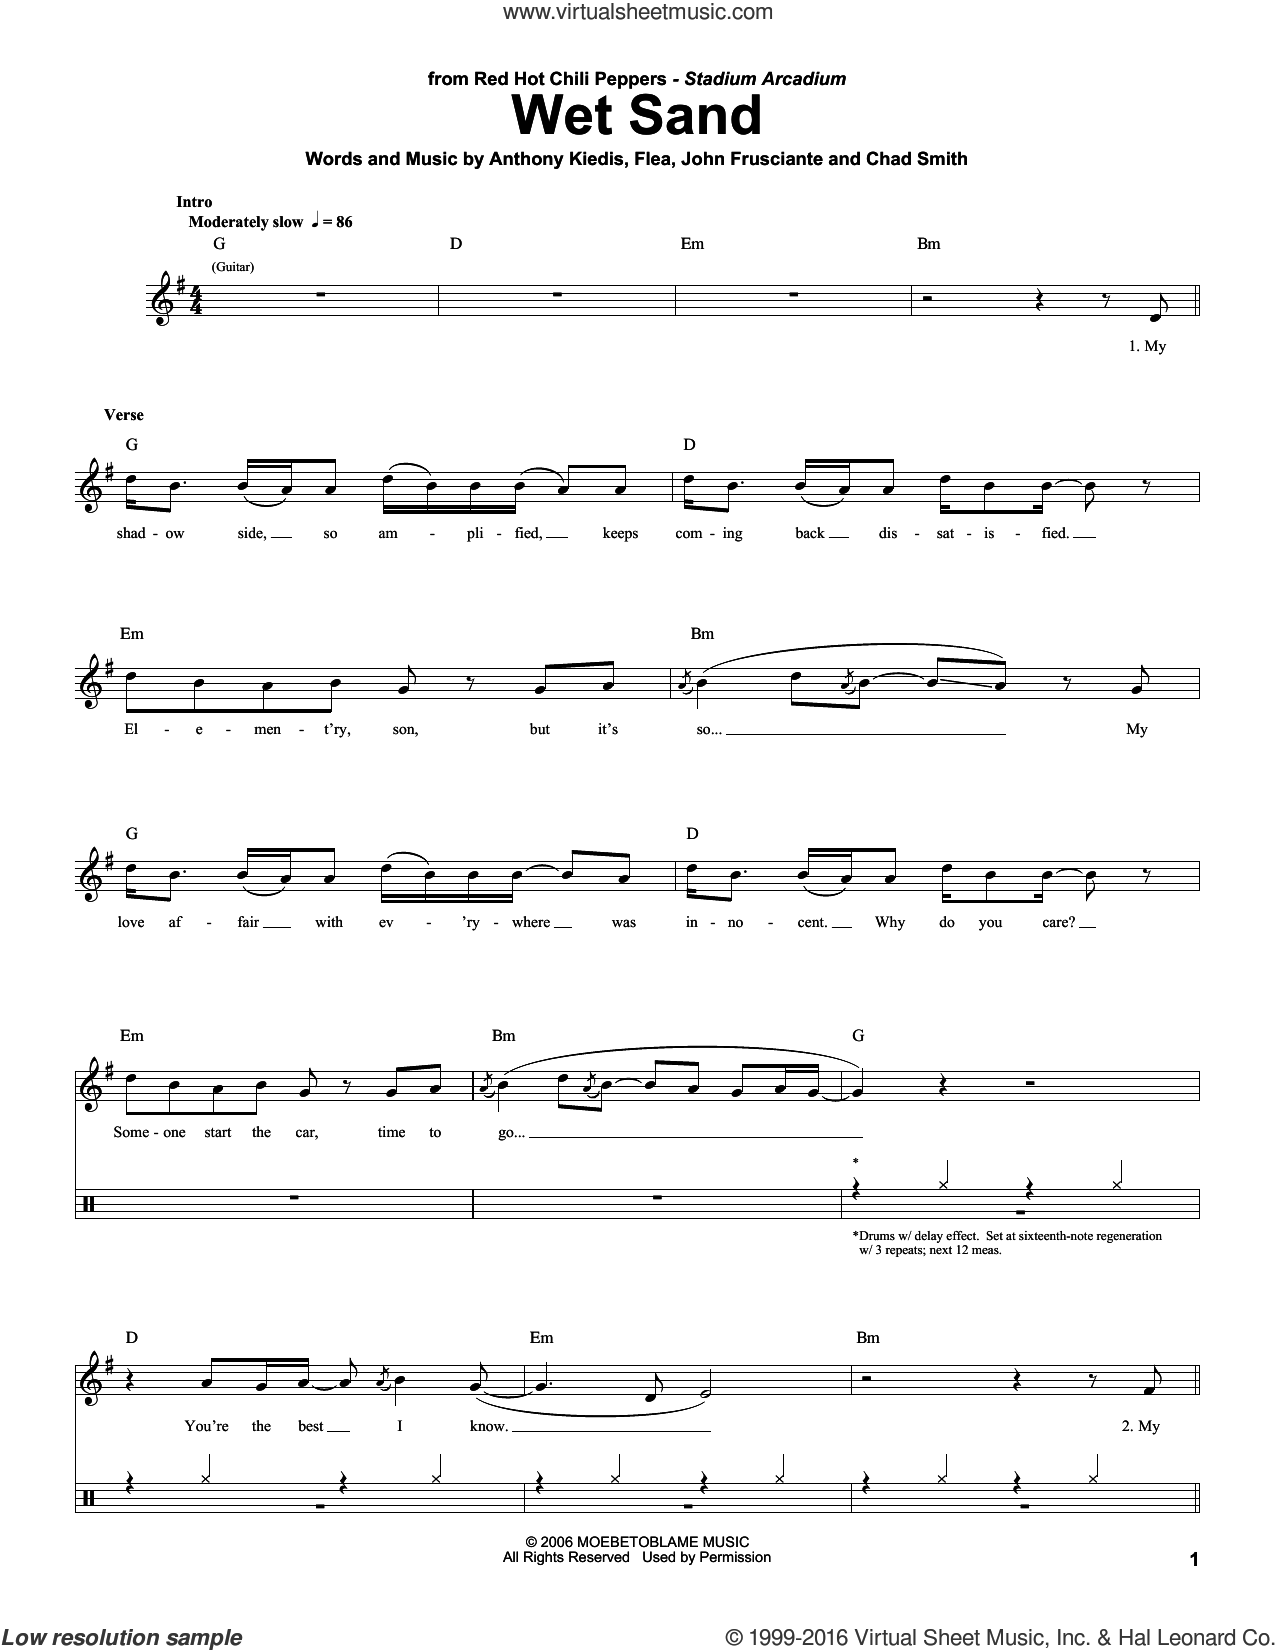 Wet Sand sheet music for drums by Red Hot Chili Peppers. Score Image Preview.